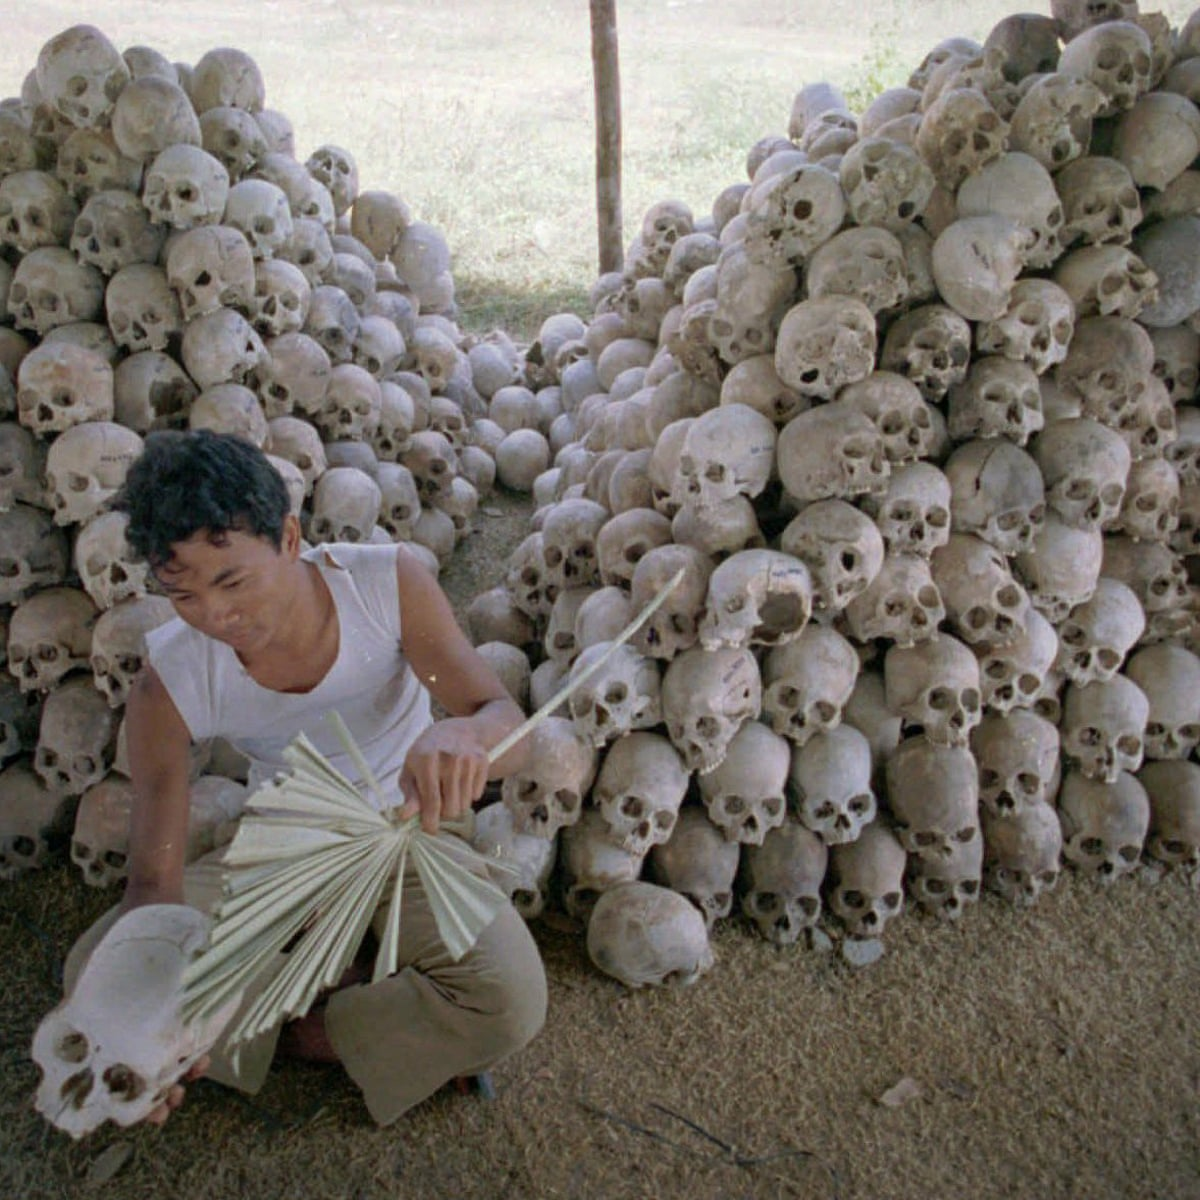 No more Khmer Rouge prosecutions, says Cambodia | Cambodia | The Guardian